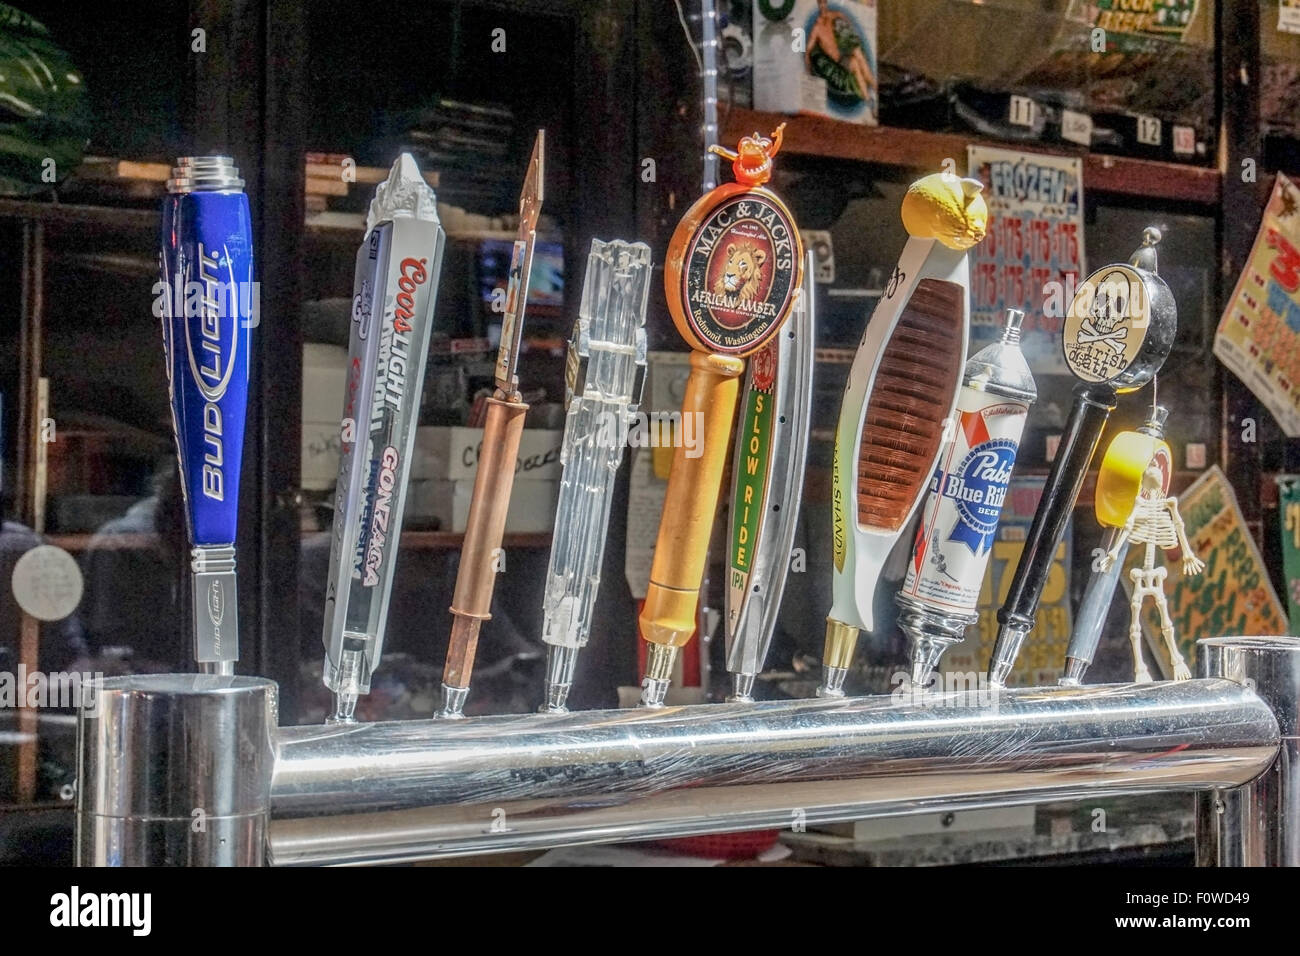 advertising on labeled handles draft beer are artifacts of time & place including national brands & local - Stock Image